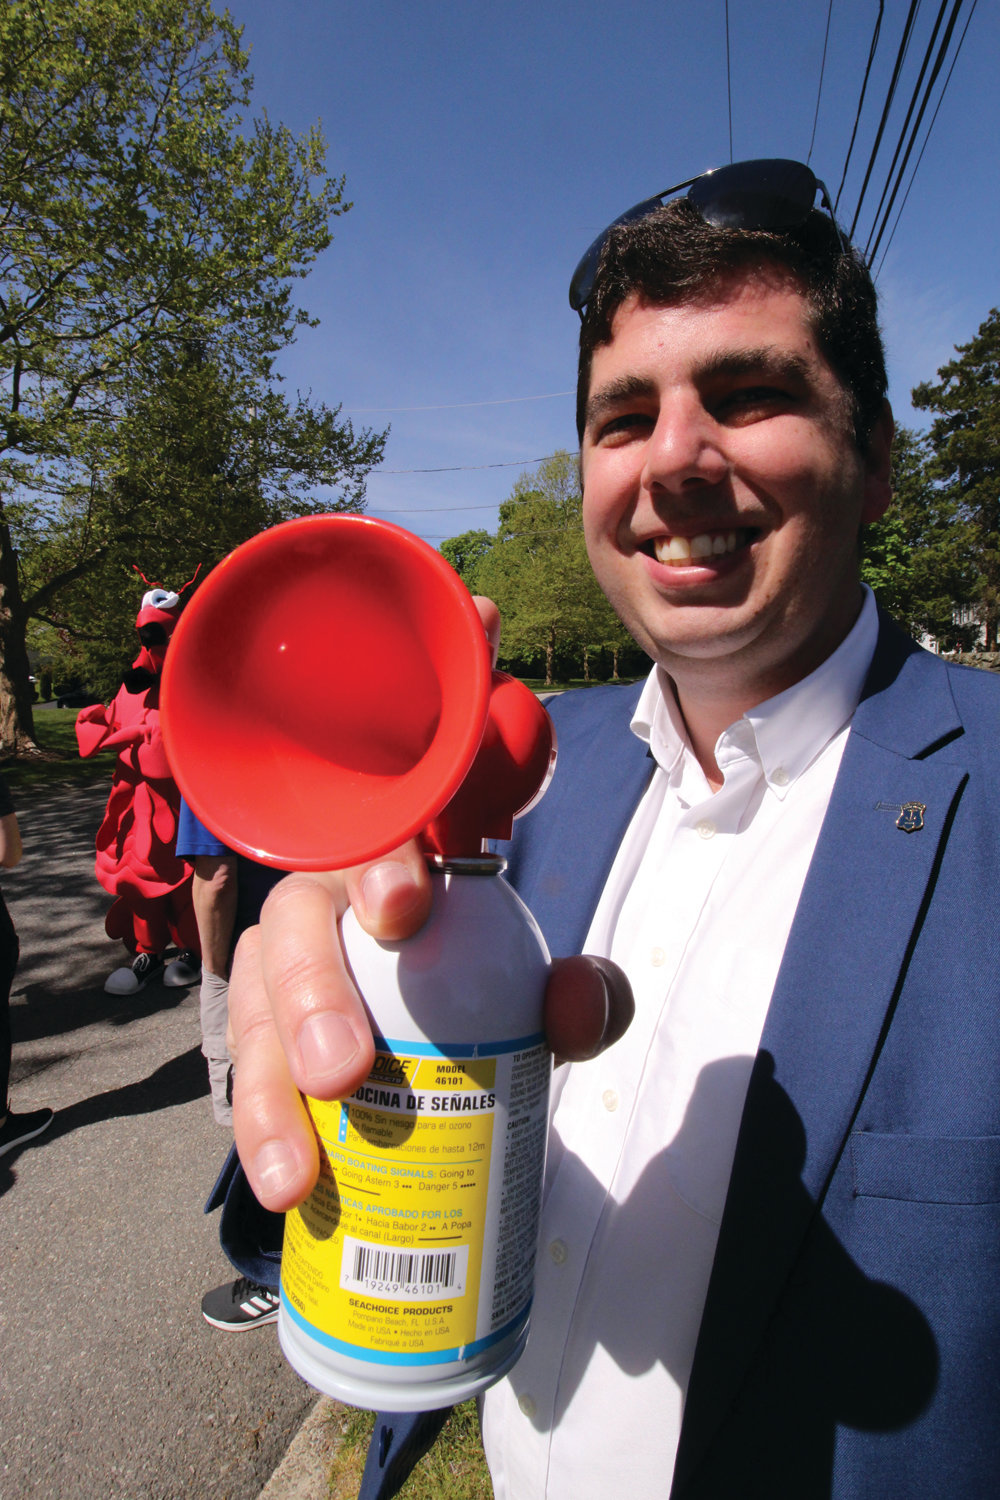 HE HAD A BLAST: Rep. Joseph Solomon Jr., whose district includes Rocky Point, blew the air horn to send 286 runners and walkers on the course.